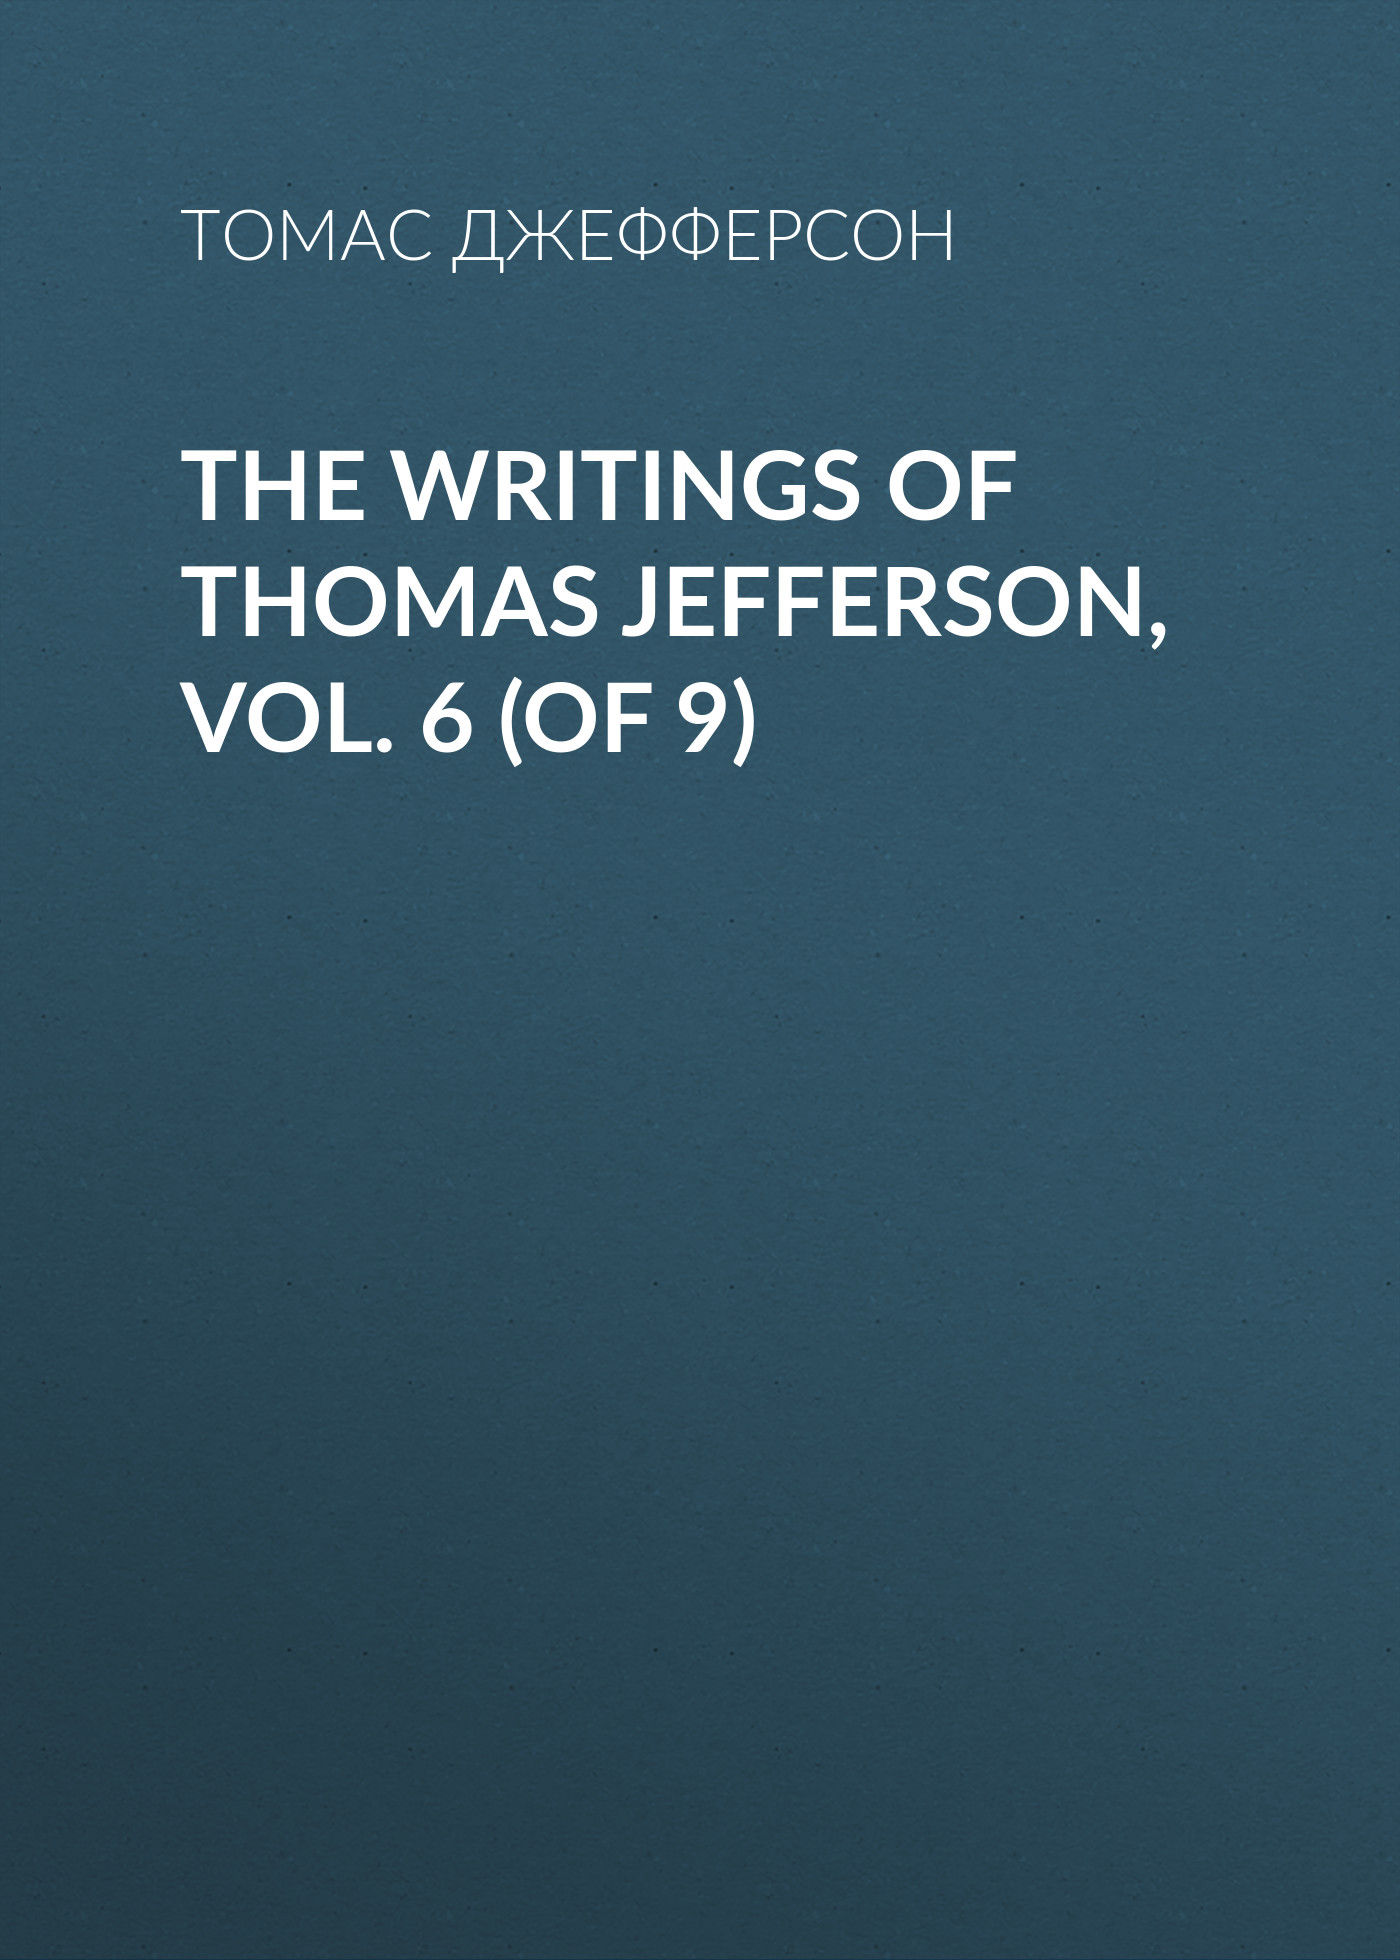 Томас Джефферсон The Writings of Thomas Jefferson, Vol. 6 (of 9) jack of fables vol 9 the end